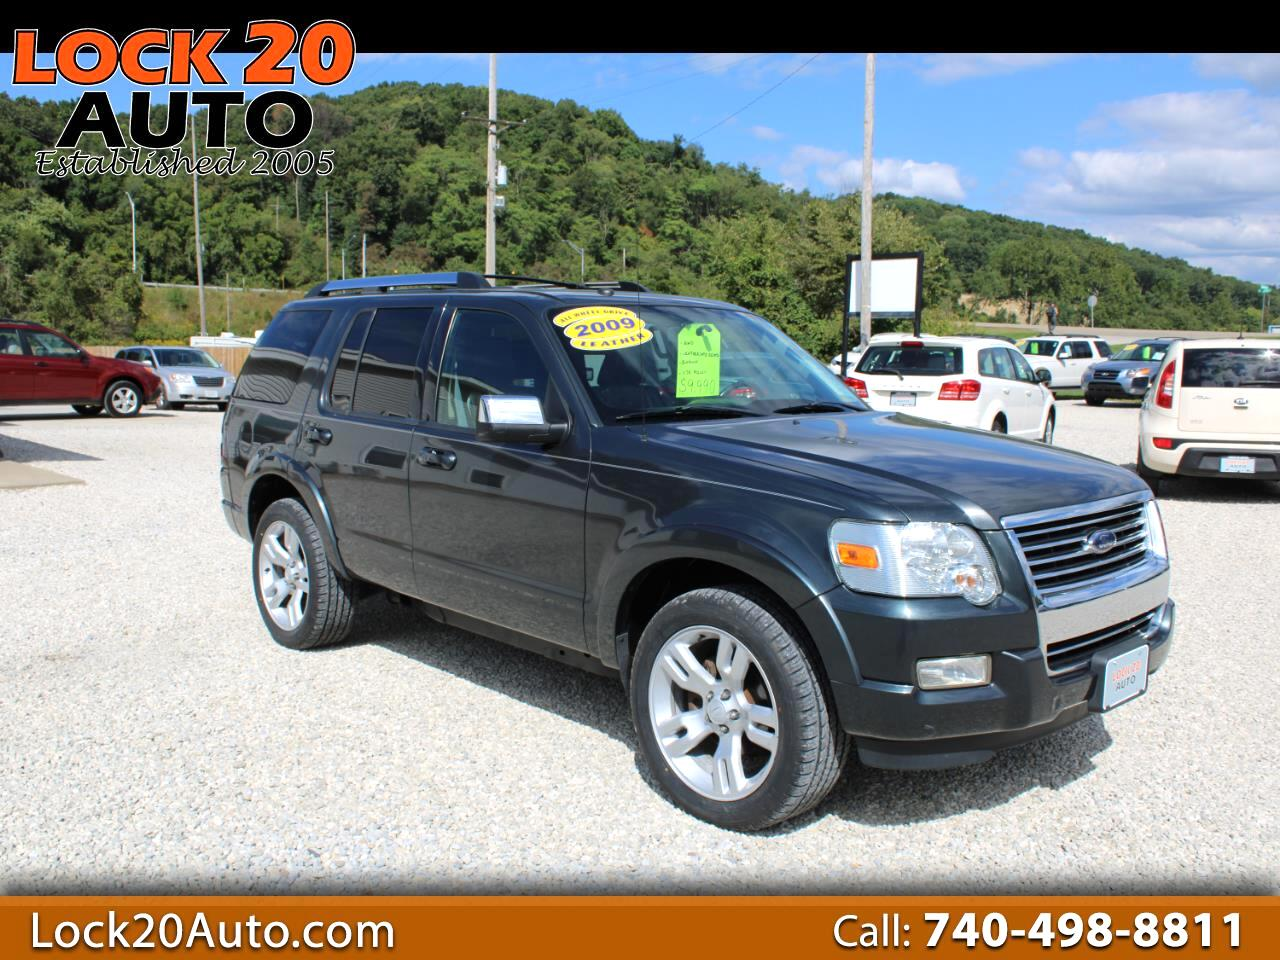 Ford Explorer AWD 4dr Limited 2009